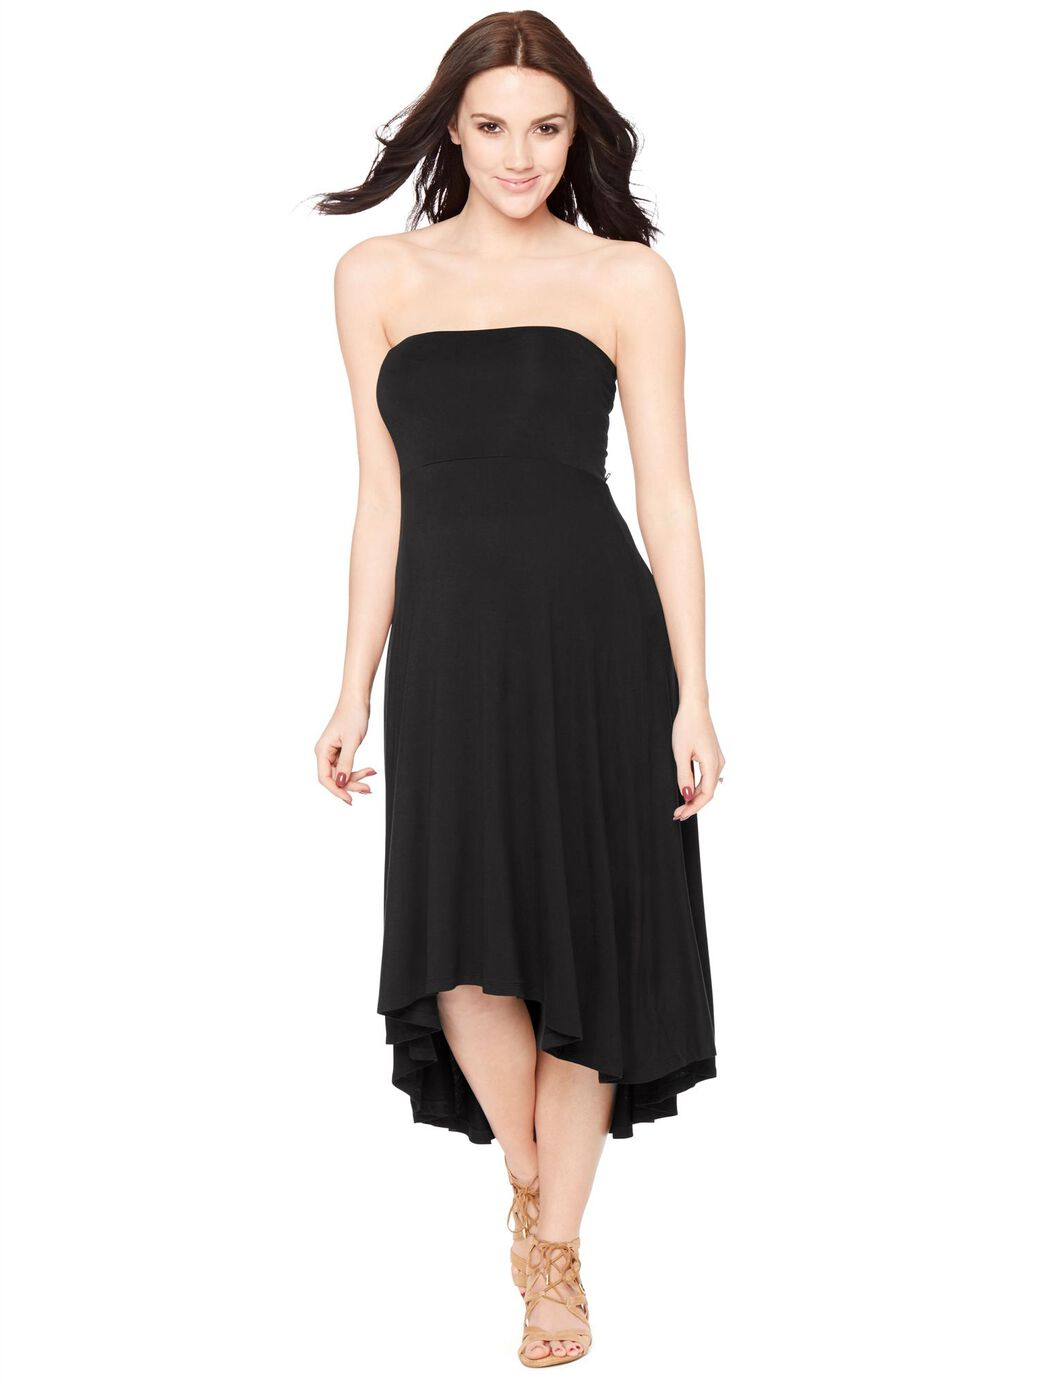 Check Price Maternal America Convertible Strapless Maternity Dress, [ MATERNAL AMERICA CONVERTIBLE STRAPLESS MATERNITY DRESS ] The Best Skin Care Allows The Skin To Heal Itself The skin, like other parts of the body, is designed to remedy itself.